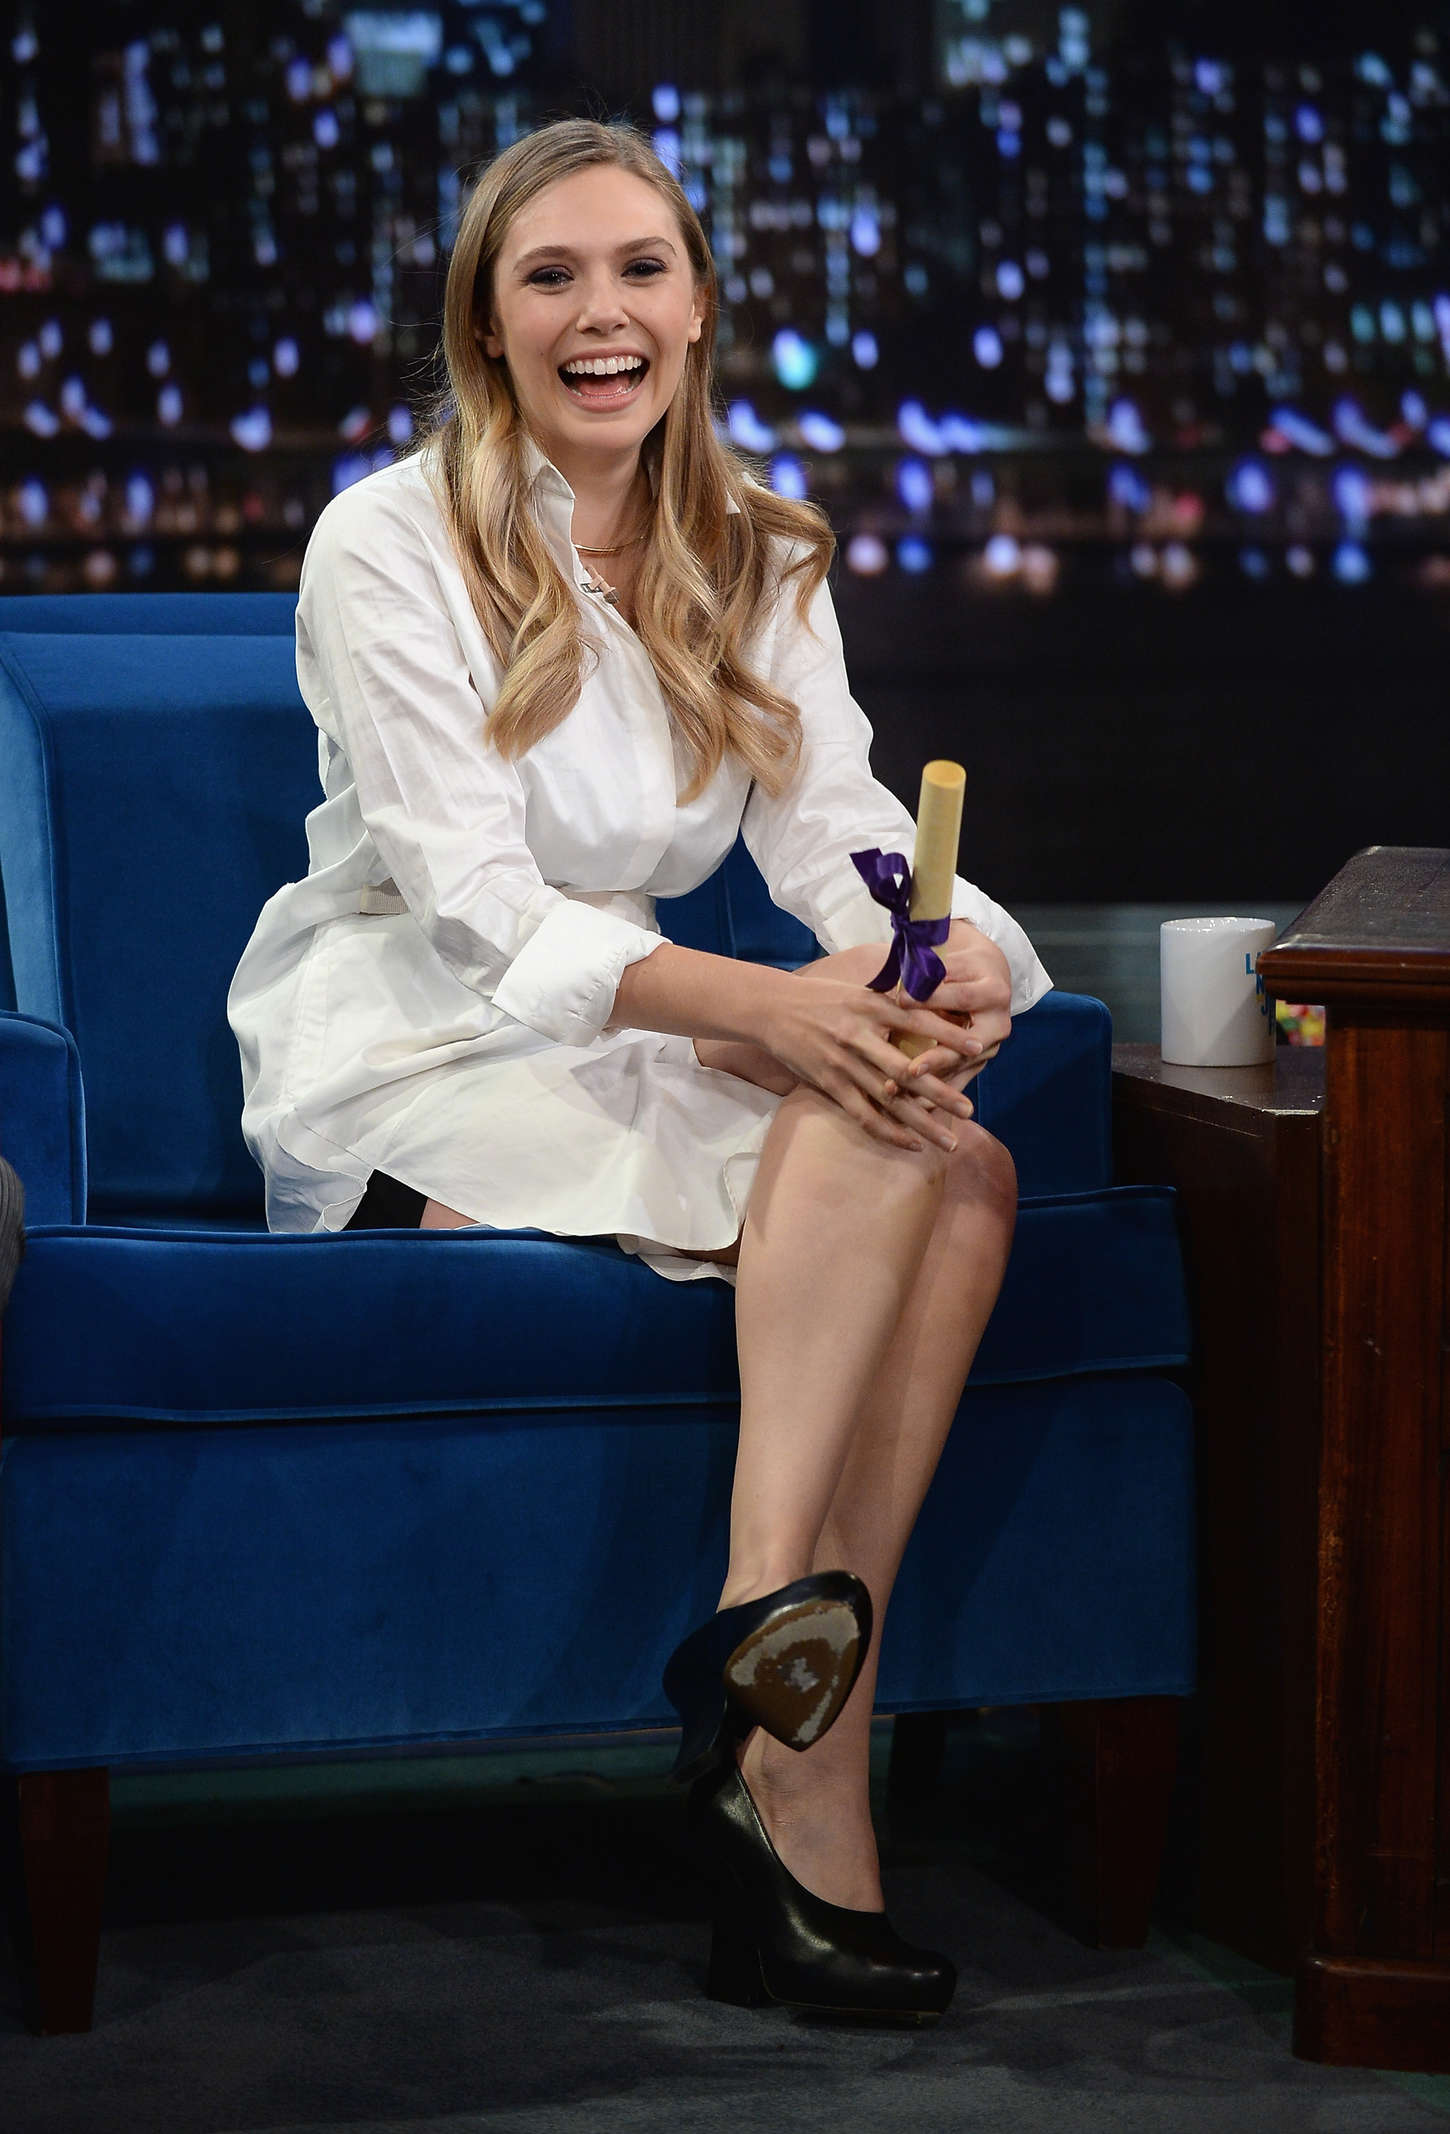 Elizabeth olsen  late night with jimmy fallon 2013  08